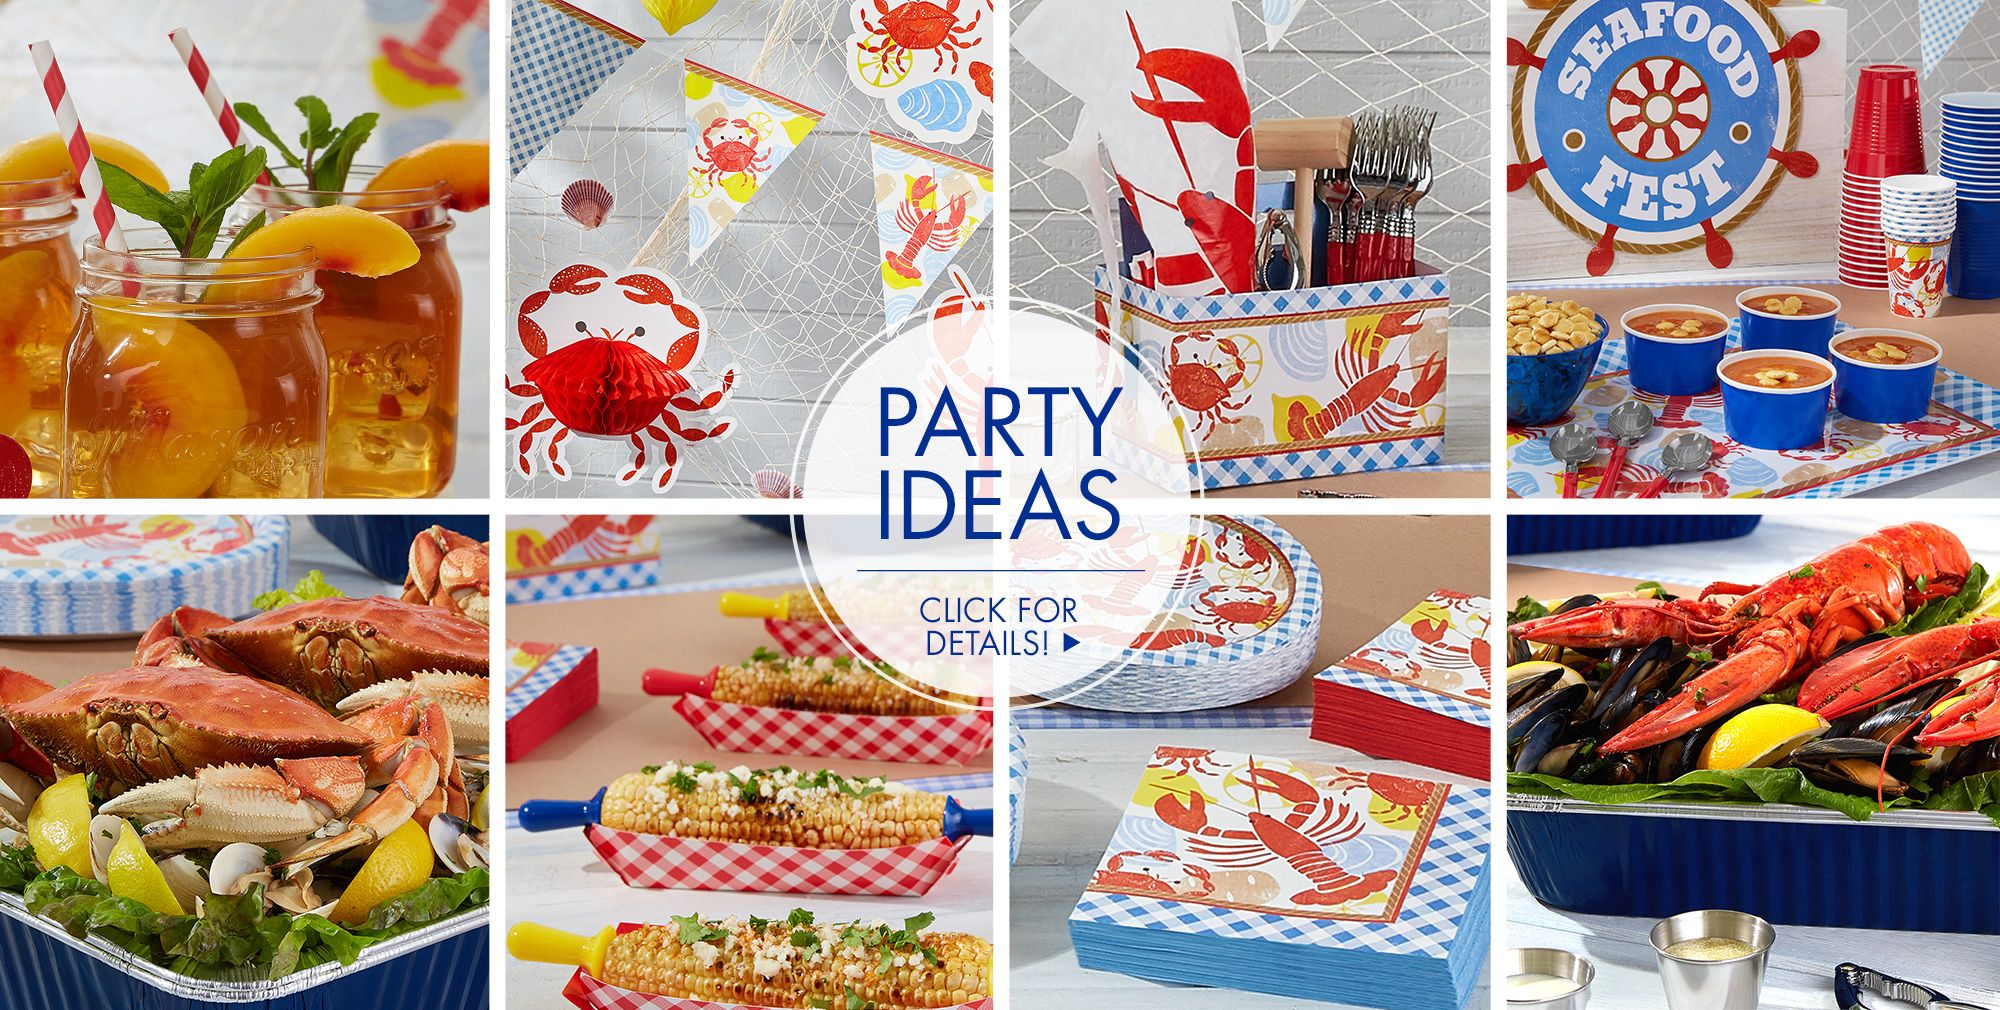 Seafood Fest — Party Ideas Click for Details